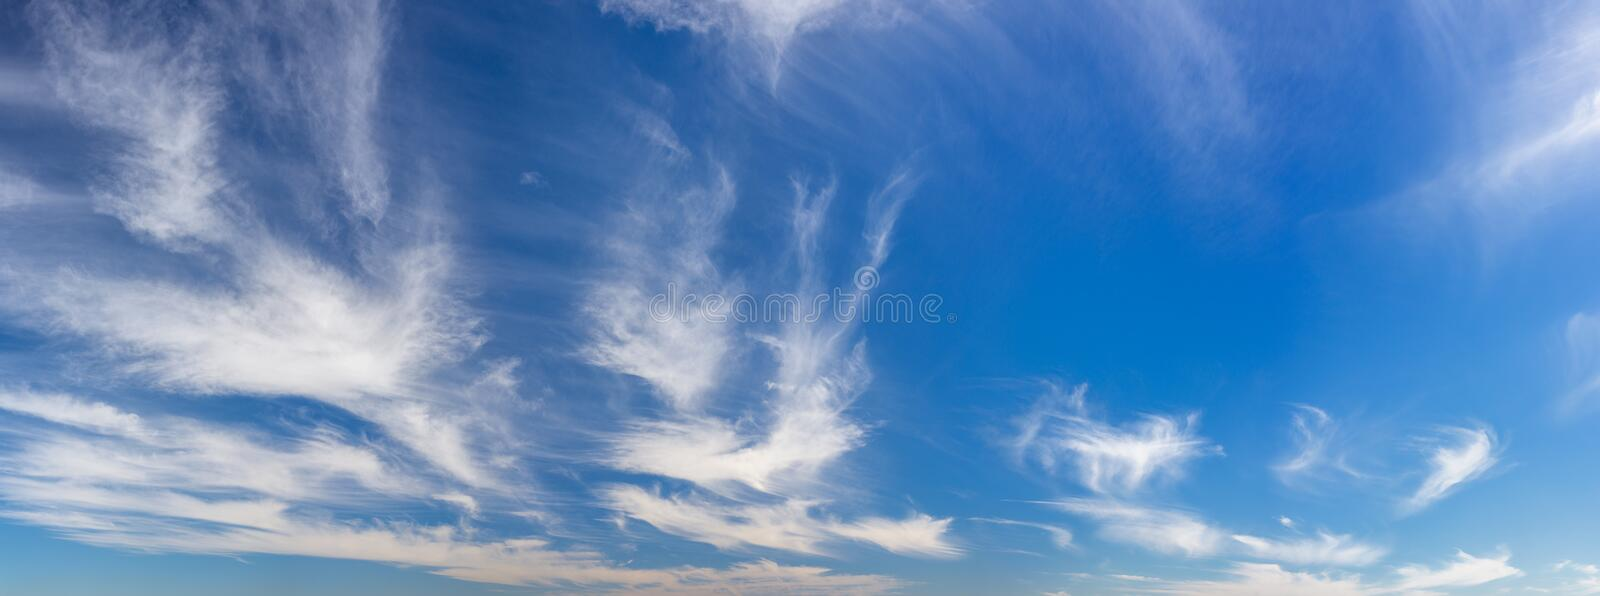 Wispy, soft clouds panorama across blue sky royalty free stock photo